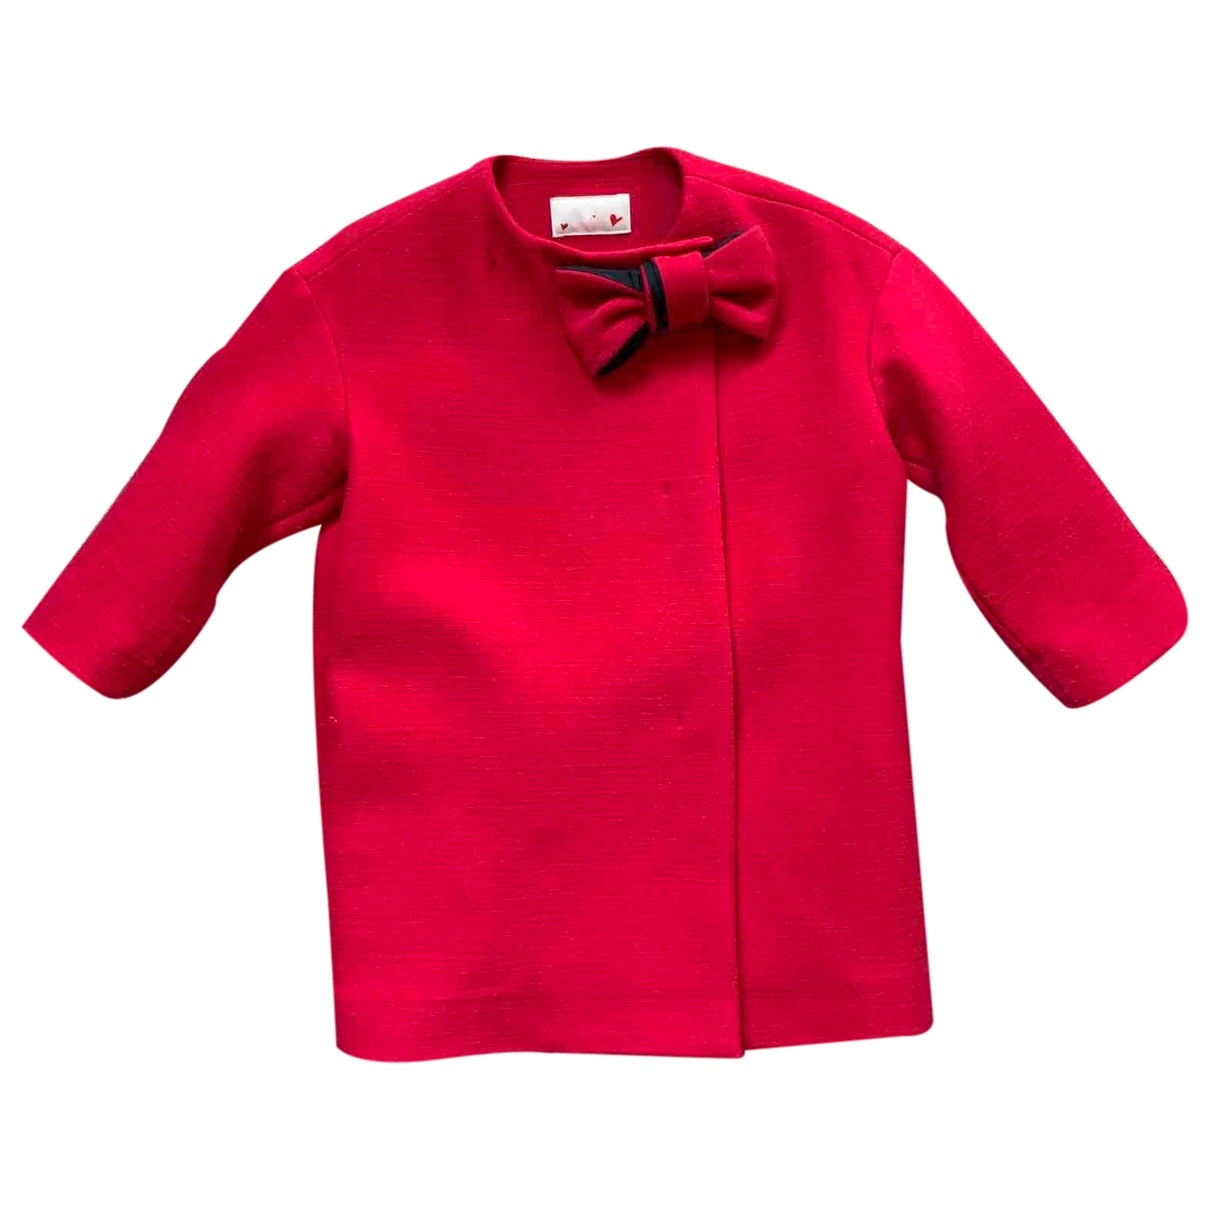 Lanvin \N Pink Wool jacket & coat for Kids 4 years - up to 102cm FR